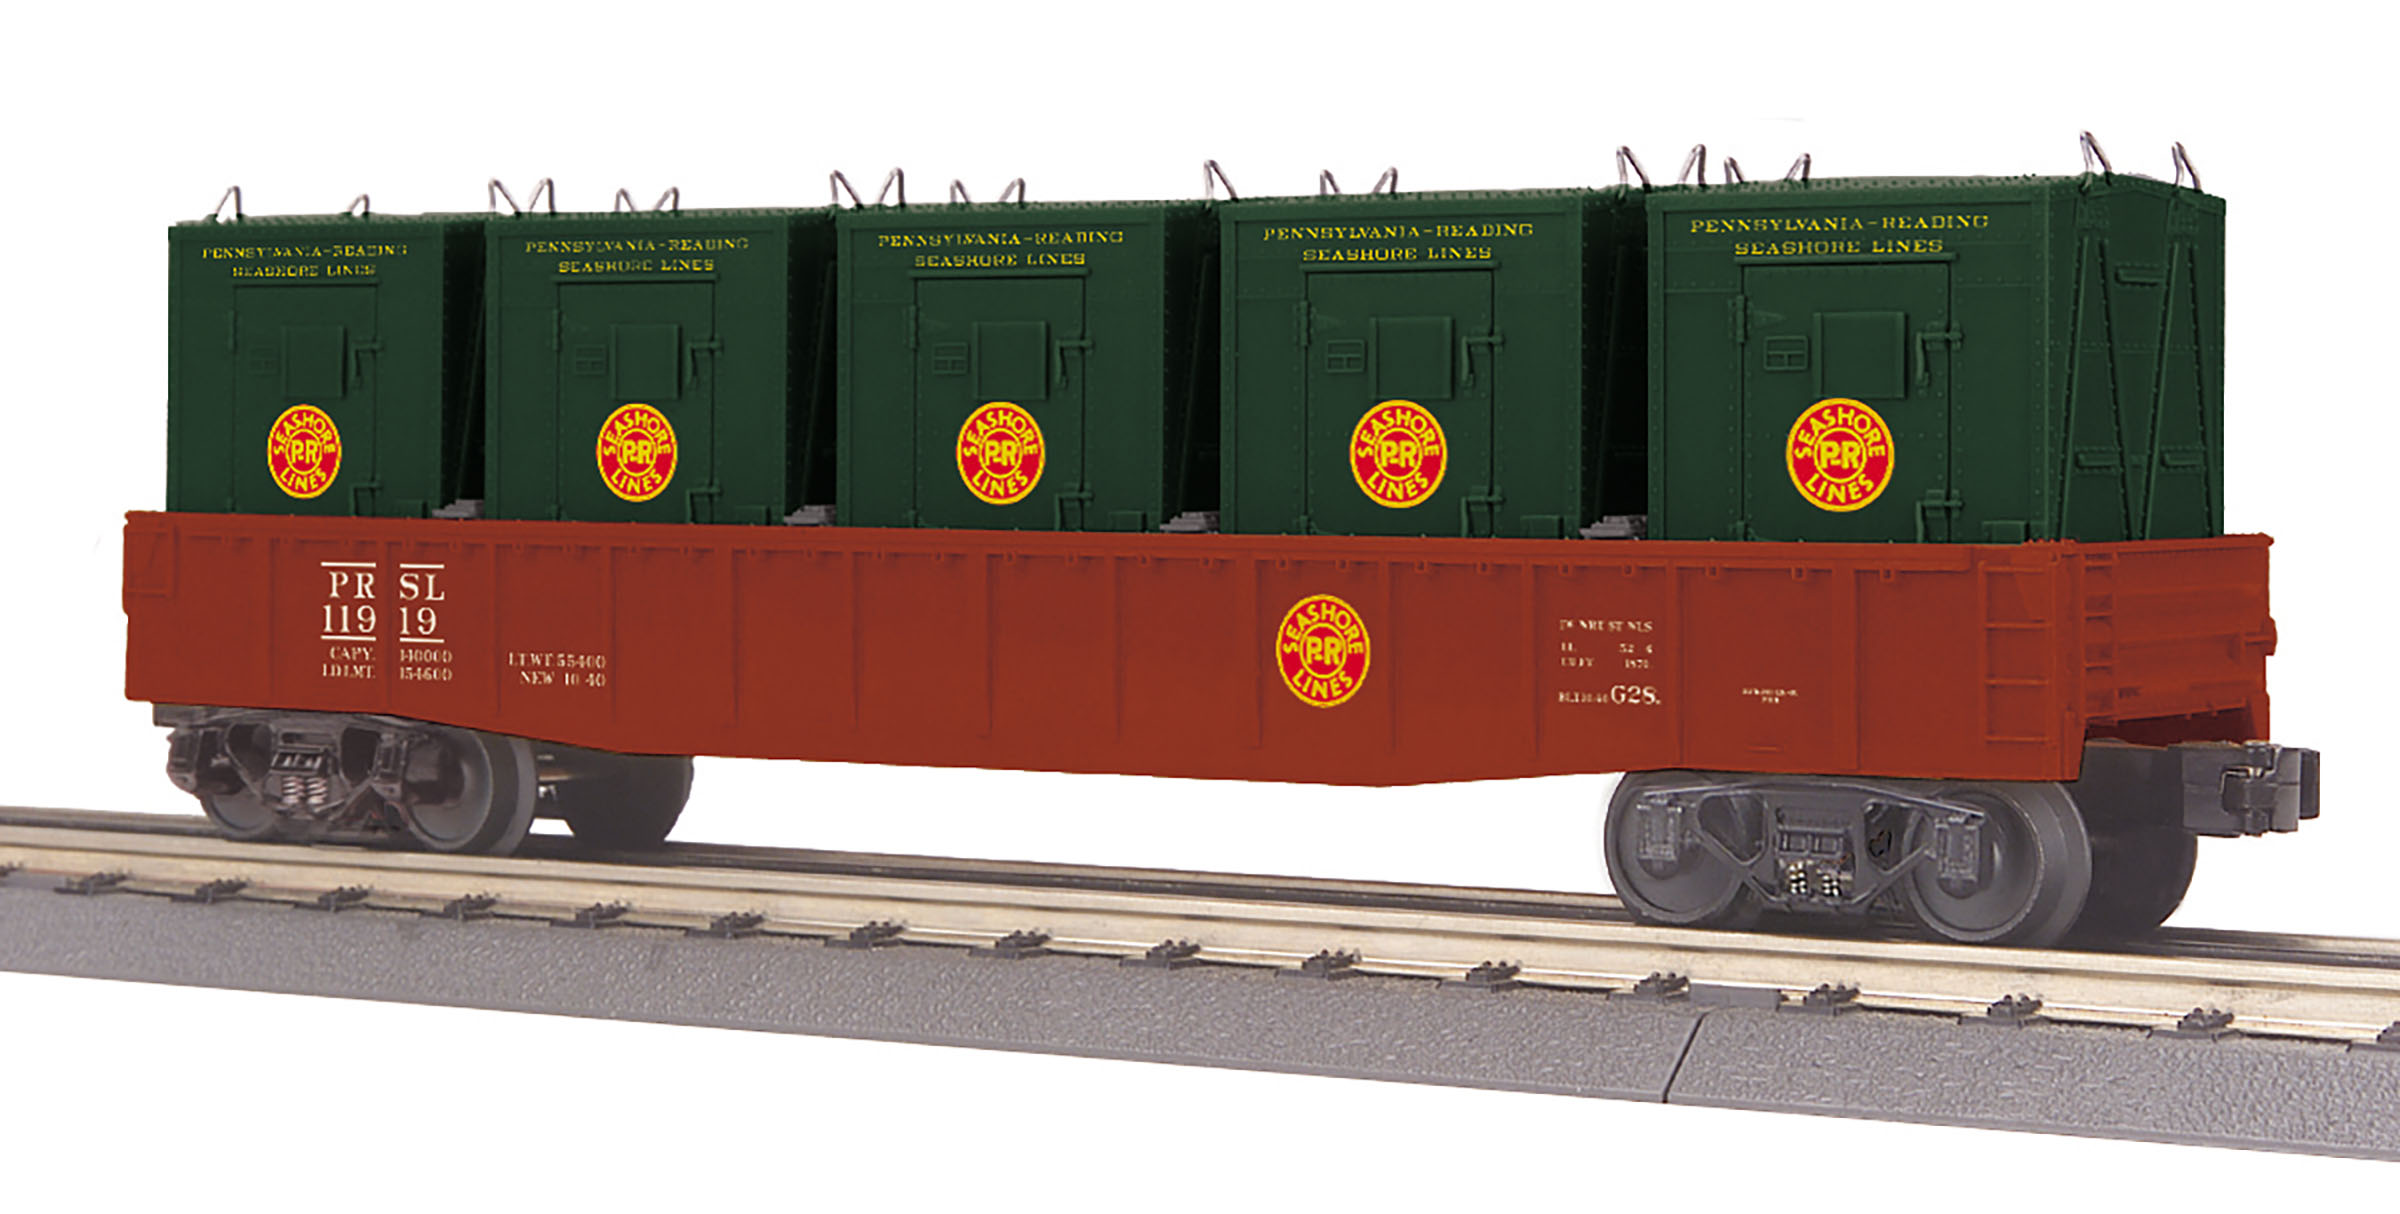 MTH 3072198 O Gondola w/ LCL Containers 3-Rail RailKing Pennsylvania Reading Seashore Lines 11919 507-3072198